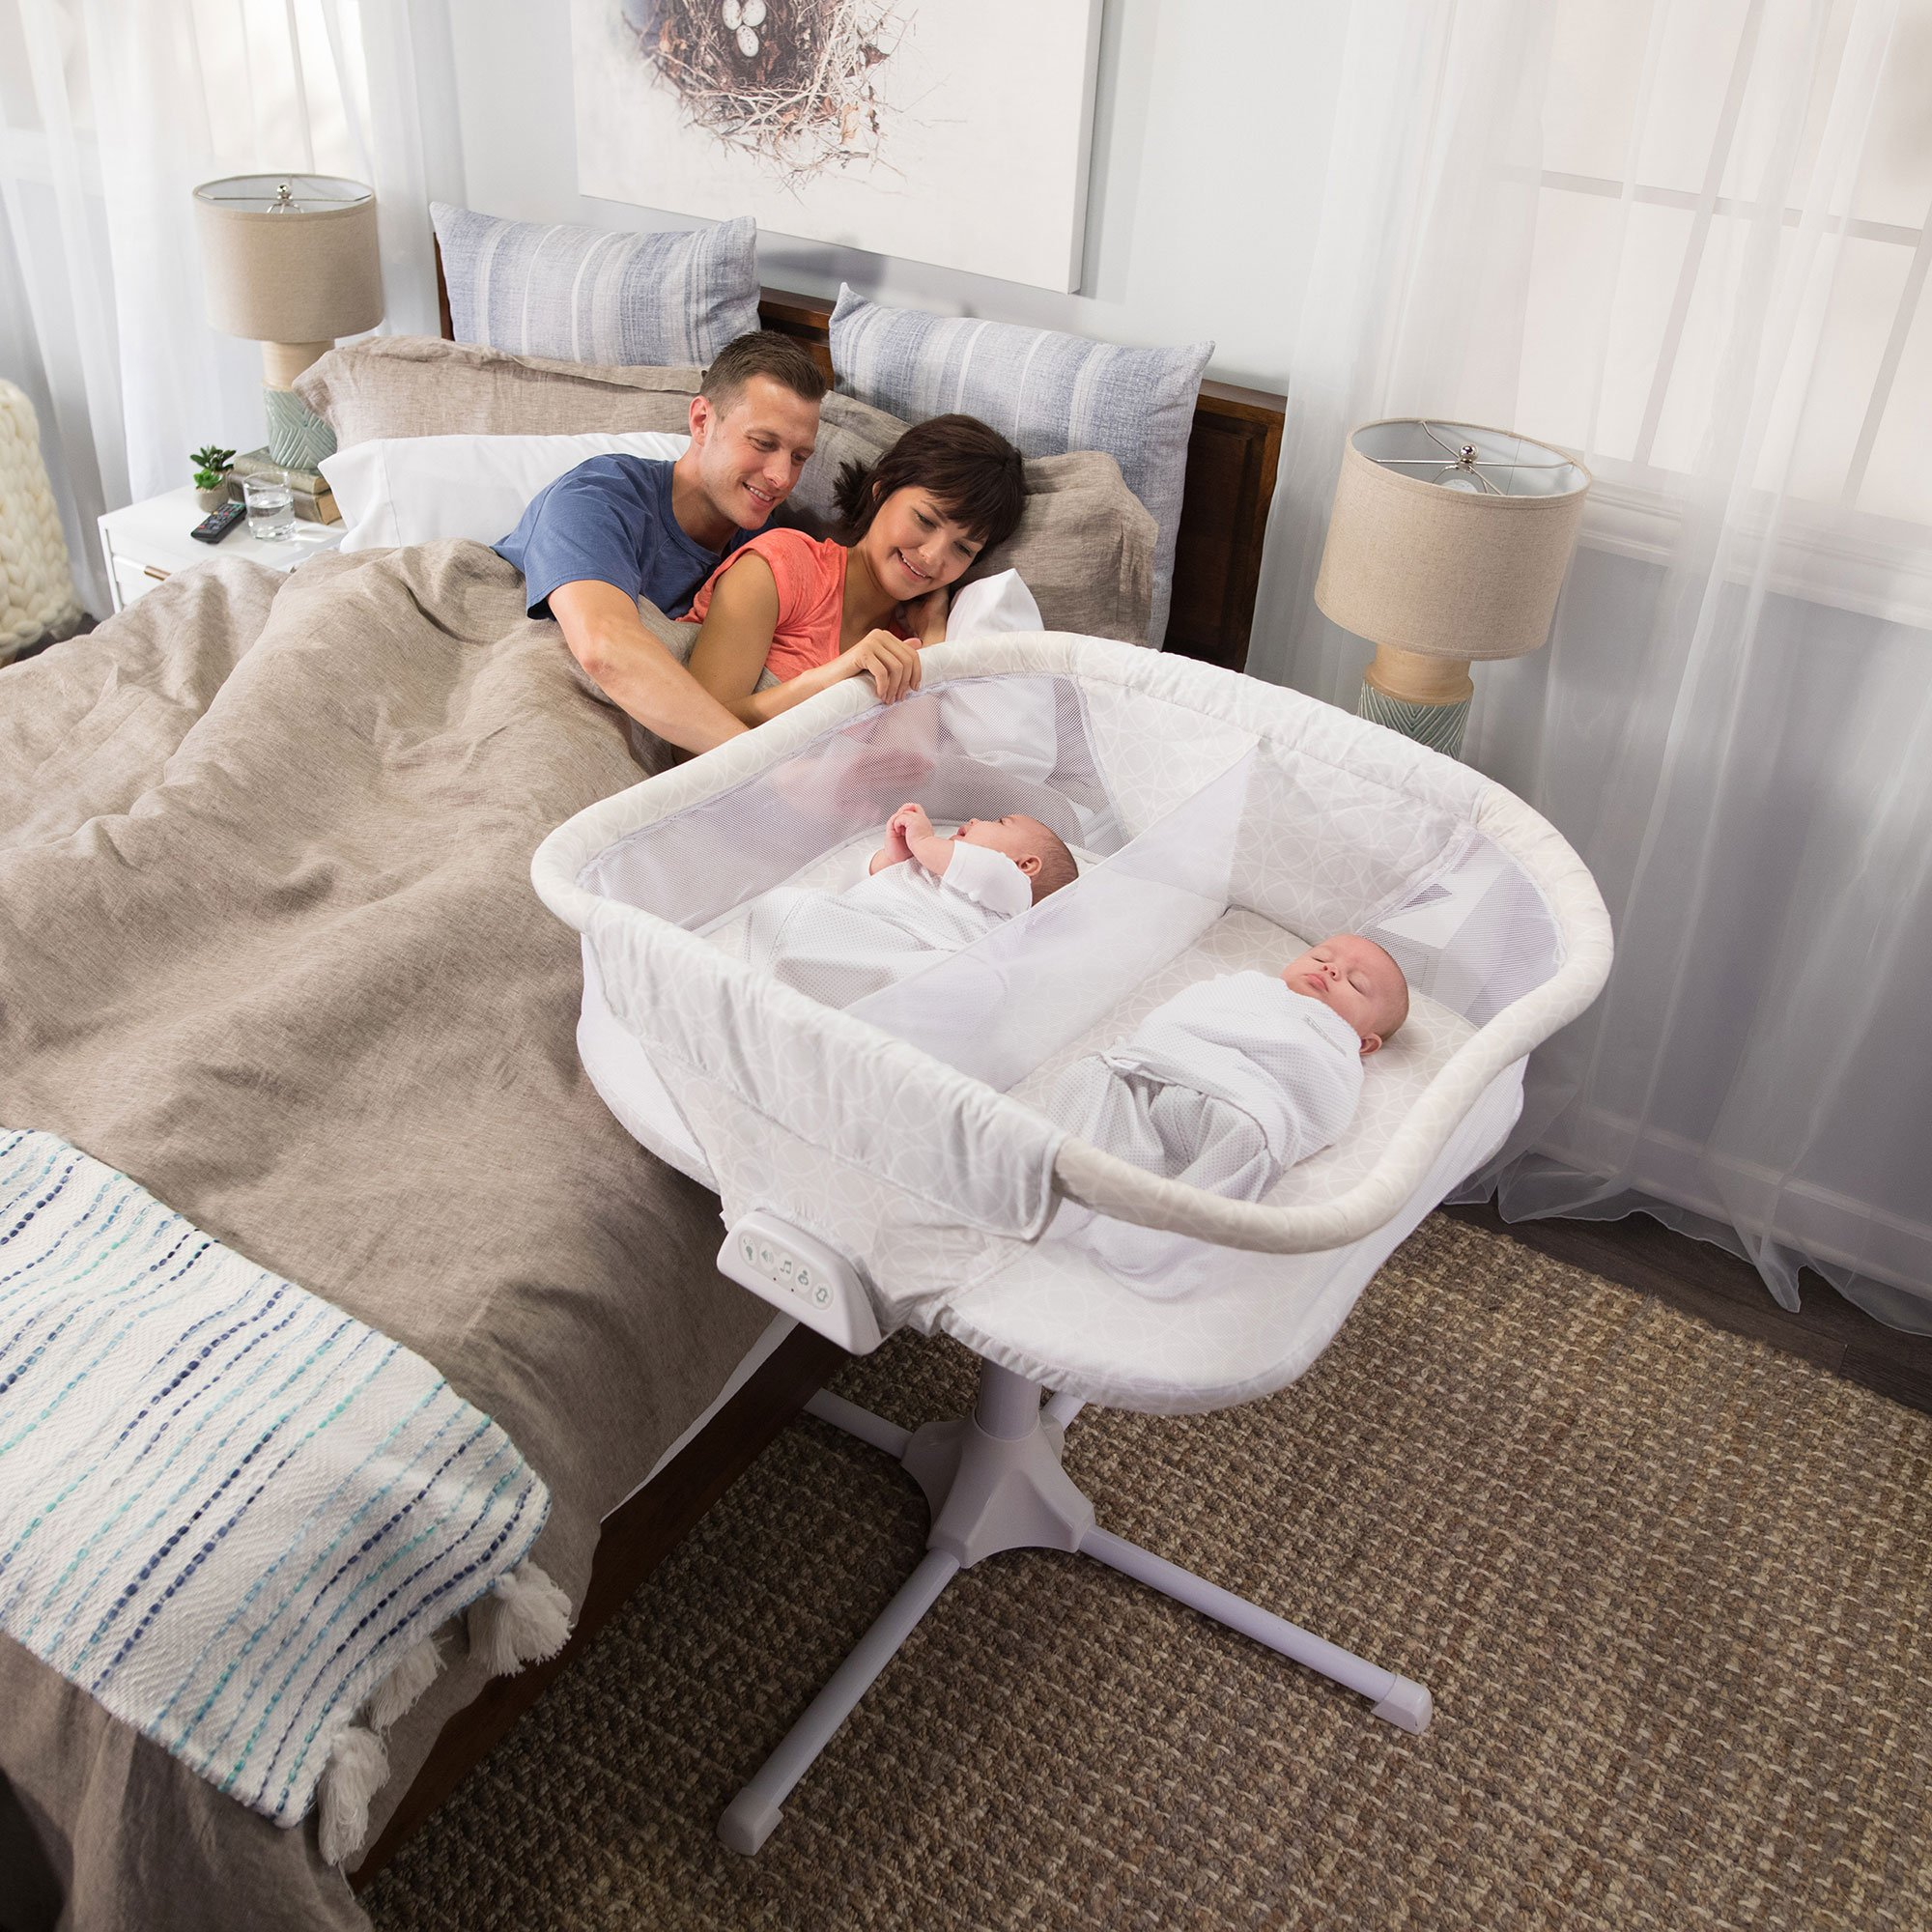 HALO Bassinest Twin Sleeper Double Bassinet – Premiere Series, Sand Circle by Halo (Image #2)